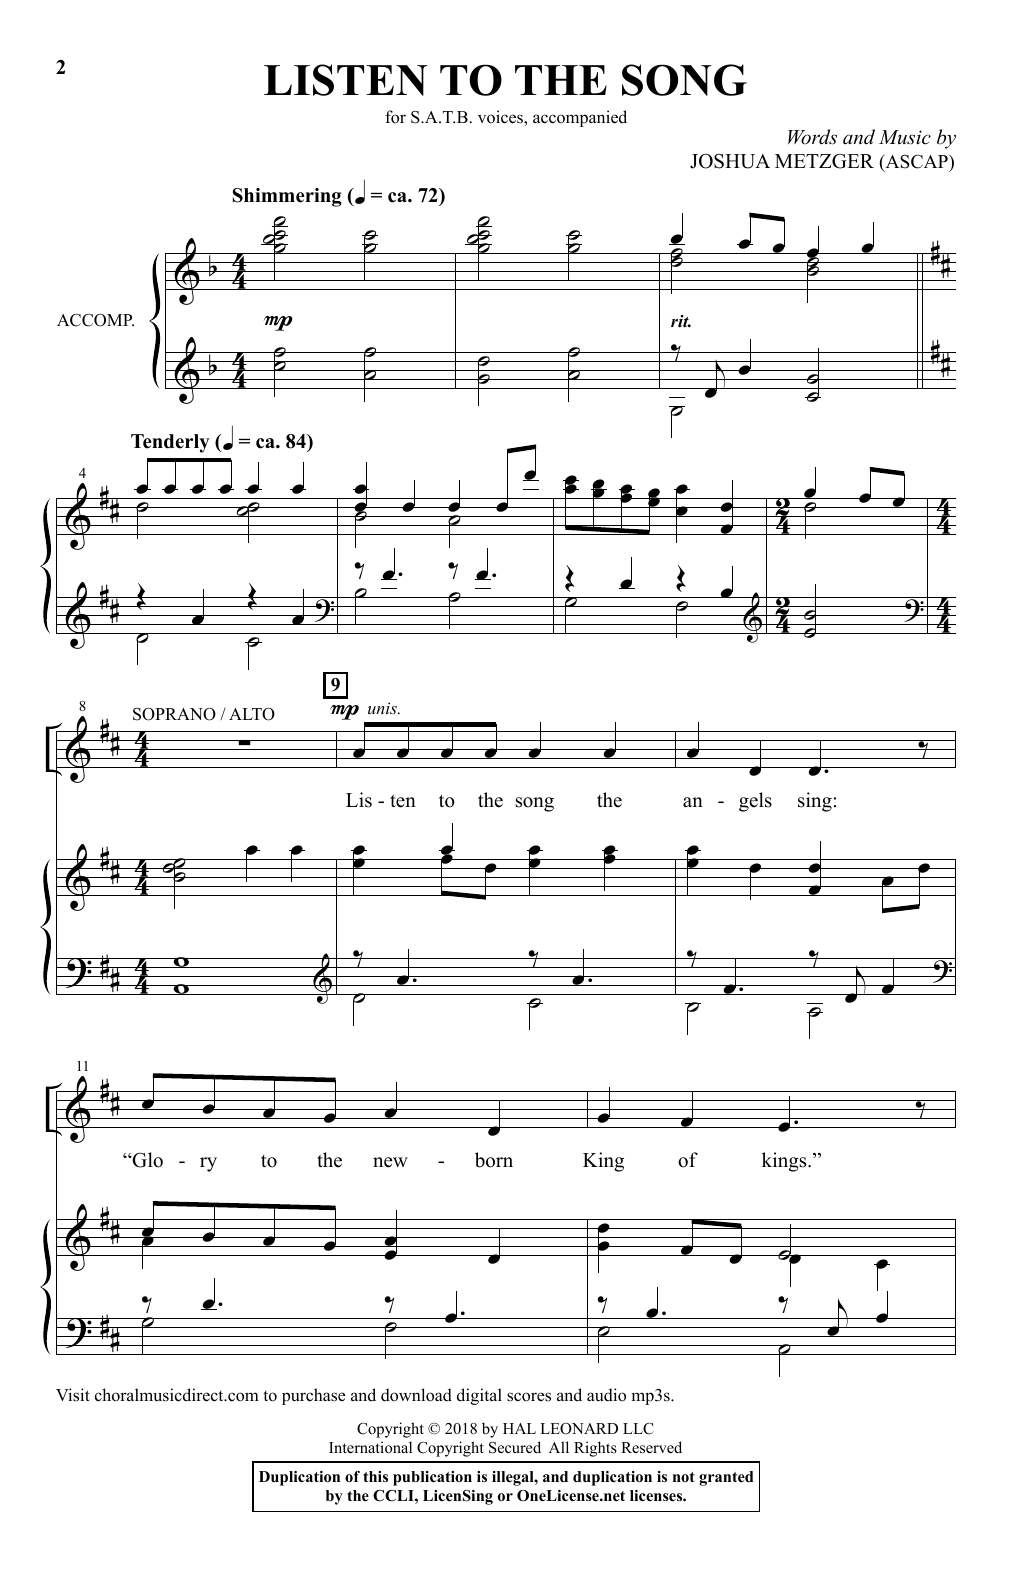 Joshua Metzger Listen To The Song sheet music notes and chords. Download Printable PDF.